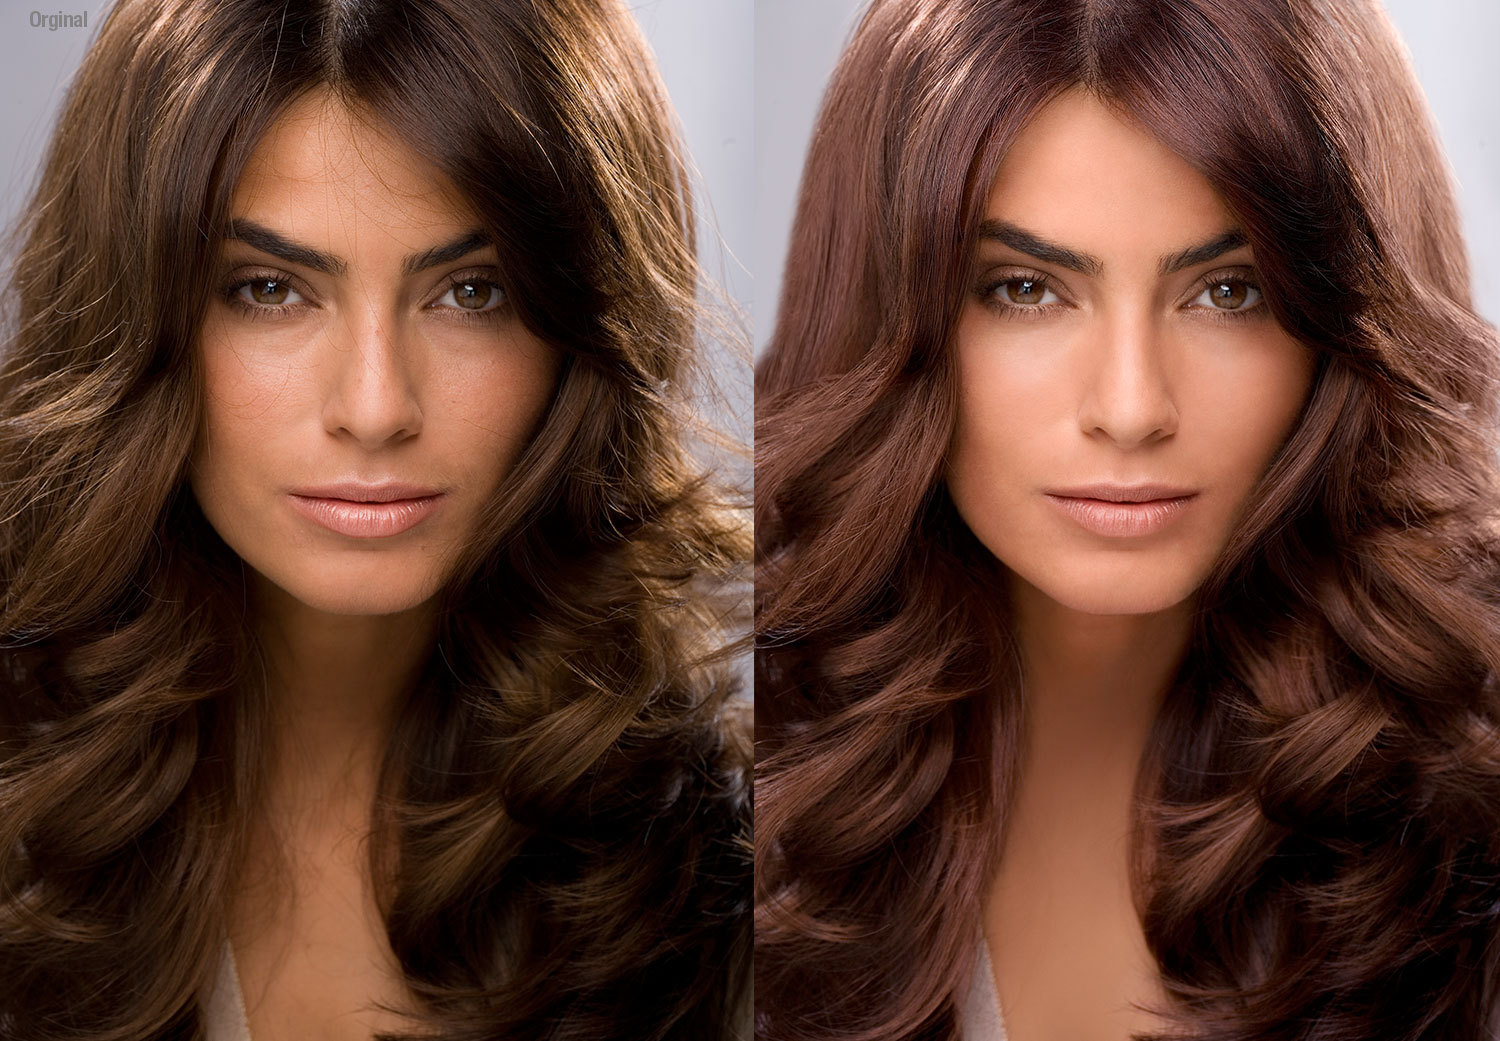 Retouching-People-Hair1.jpg